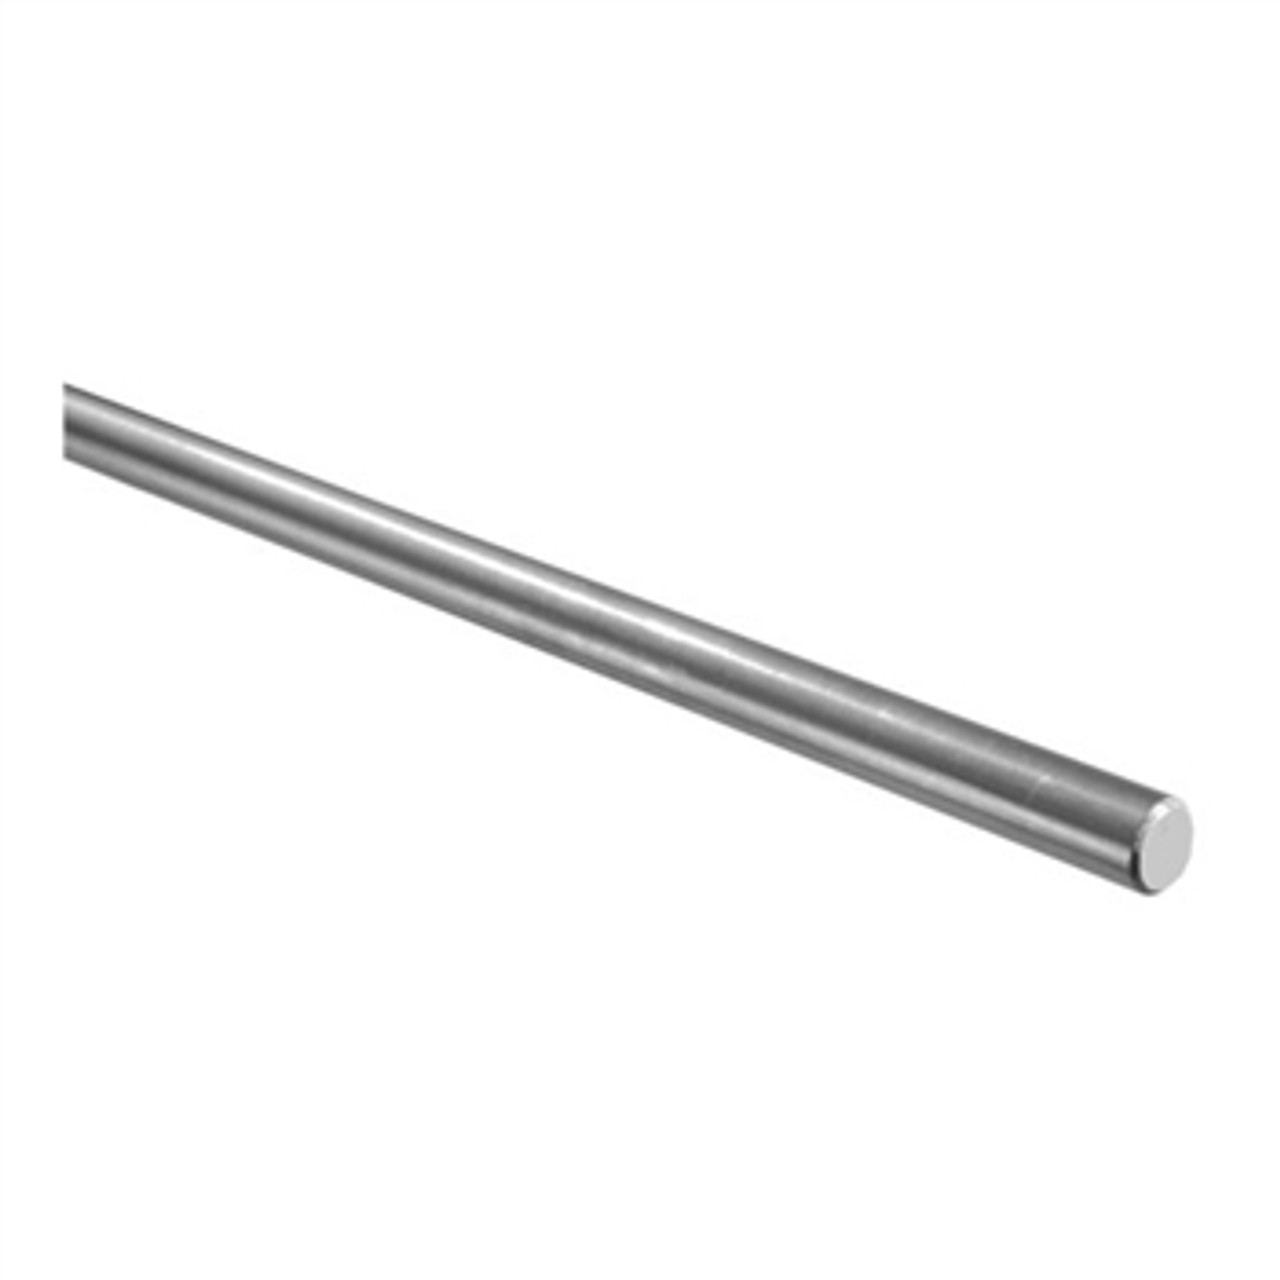 """E0050 9/16"""" Stainless Round Bar, 10'"""